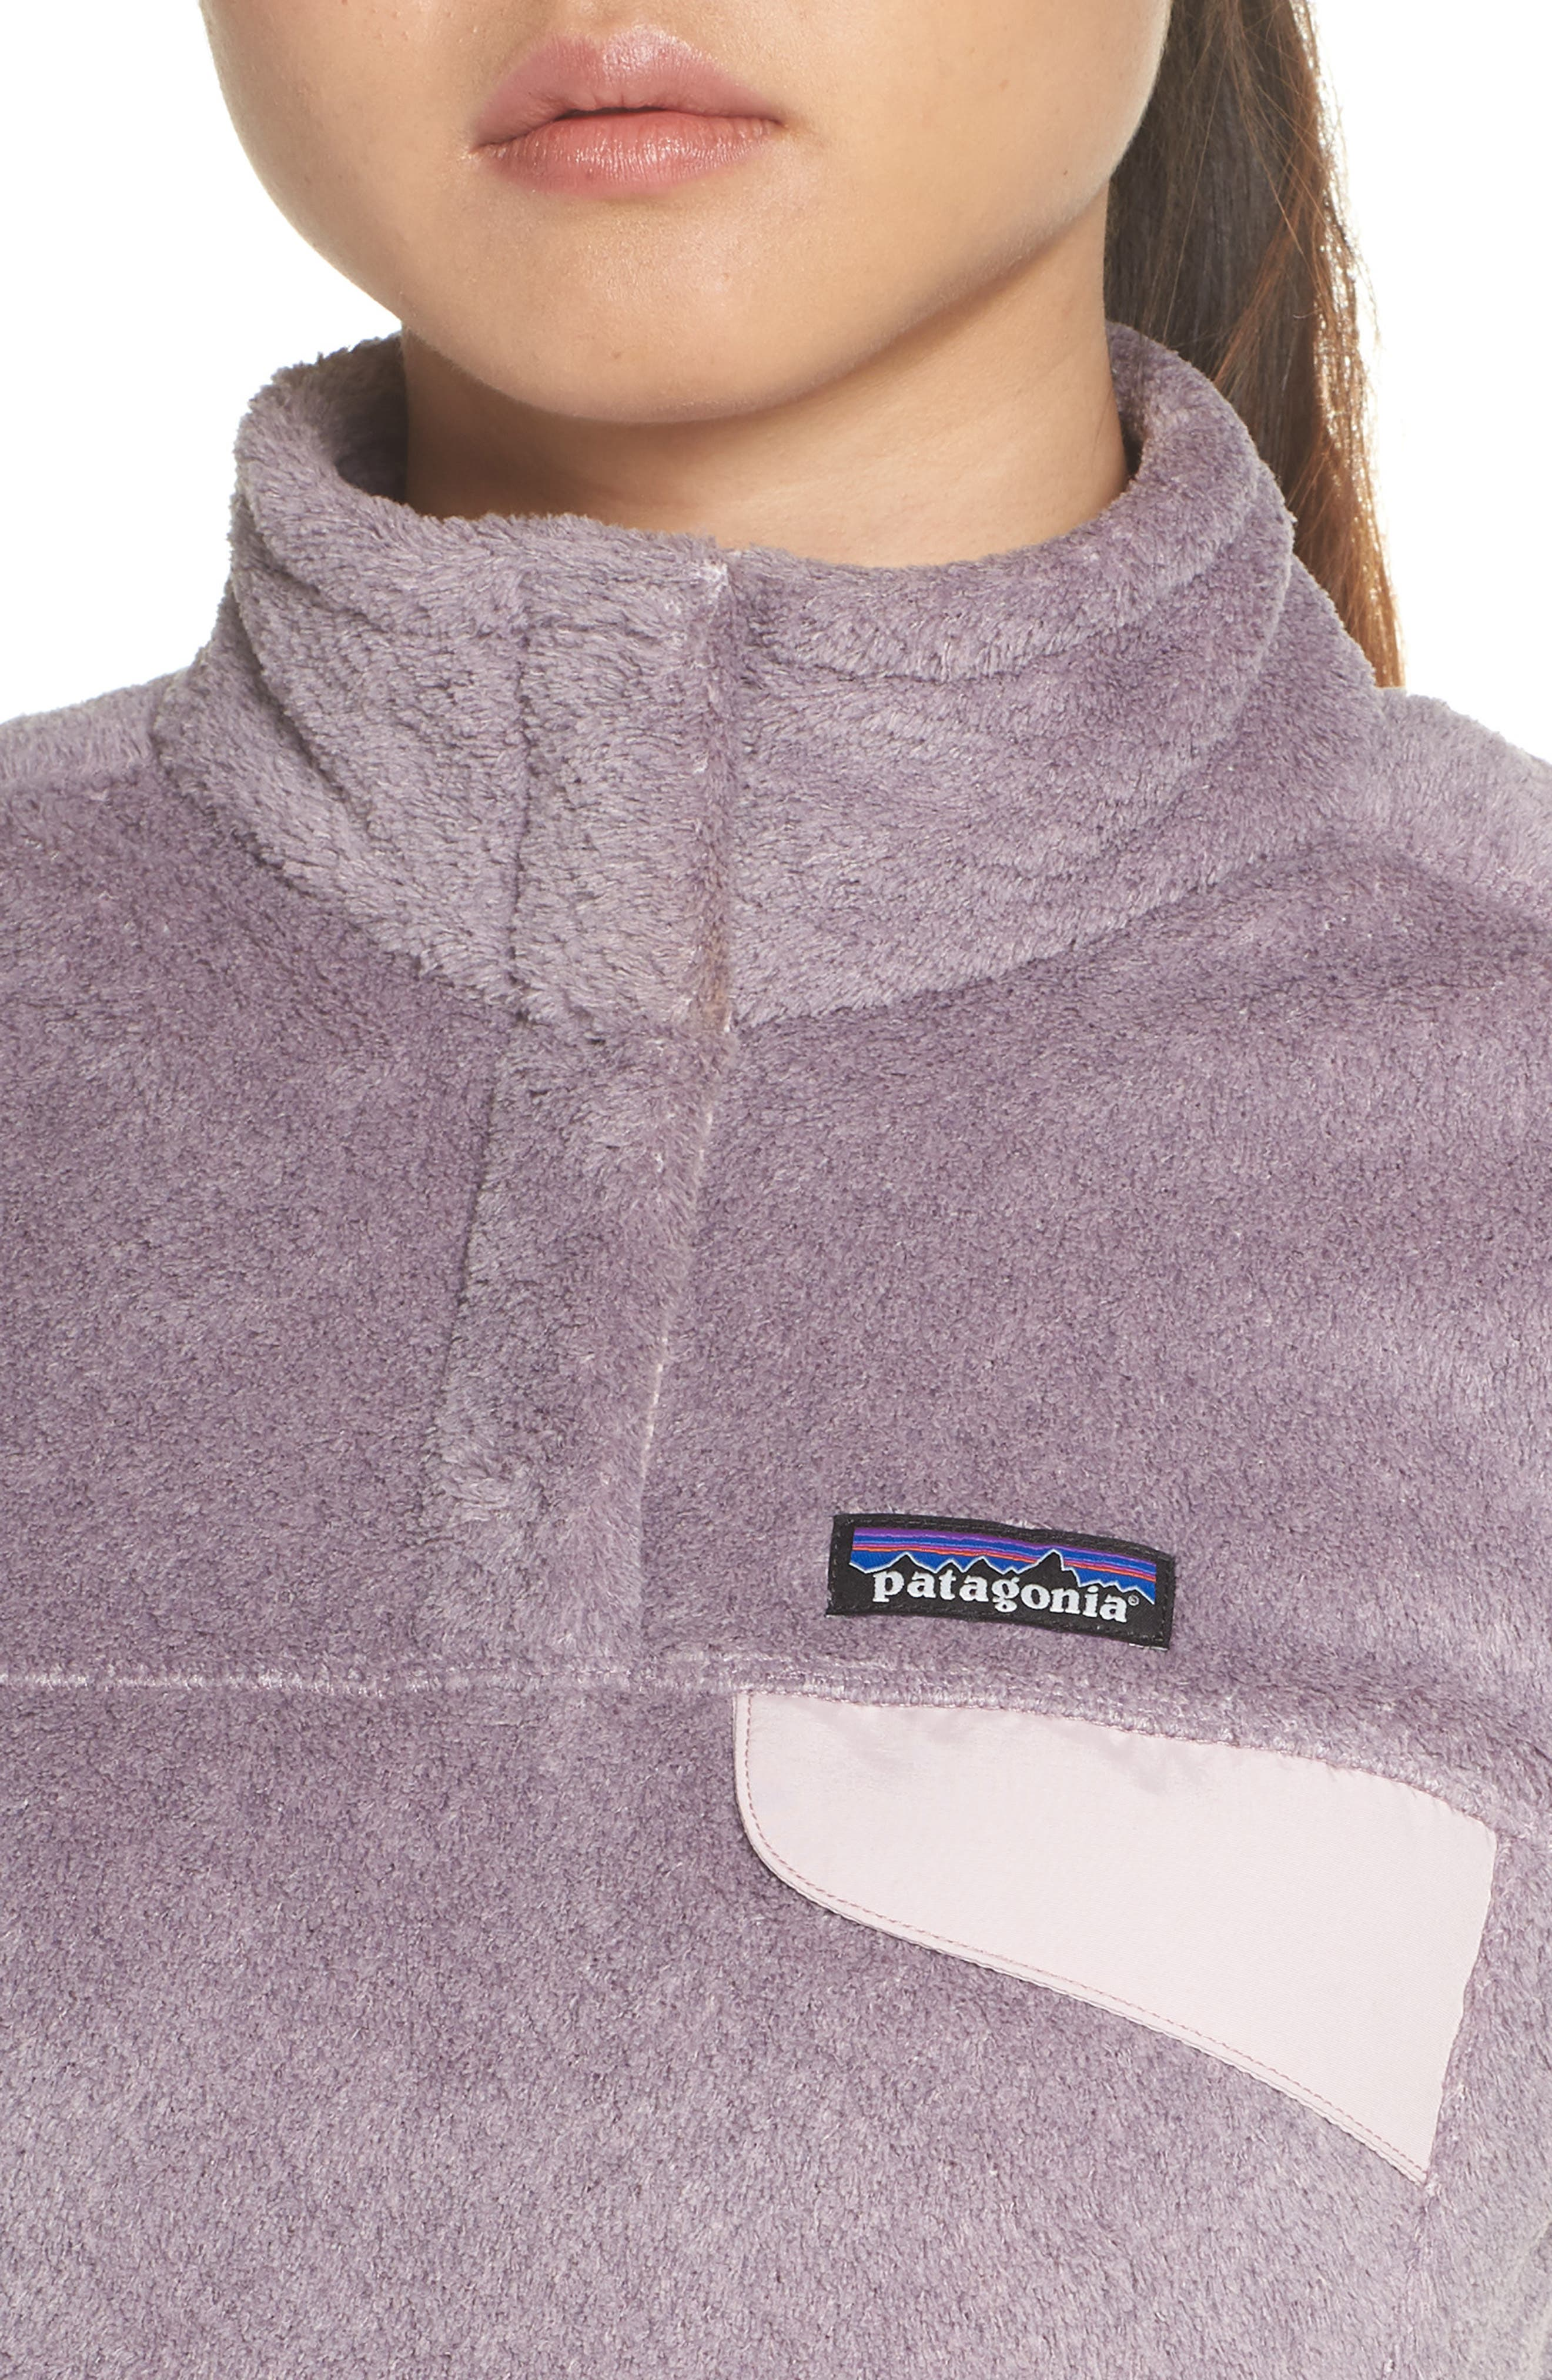 Re-Tool Snap-T<sup>®</sup> Fleece Pullover,                             Alternate thumbnail 4, color,                             SMOKEY VIOLET PURPLE X-DYE